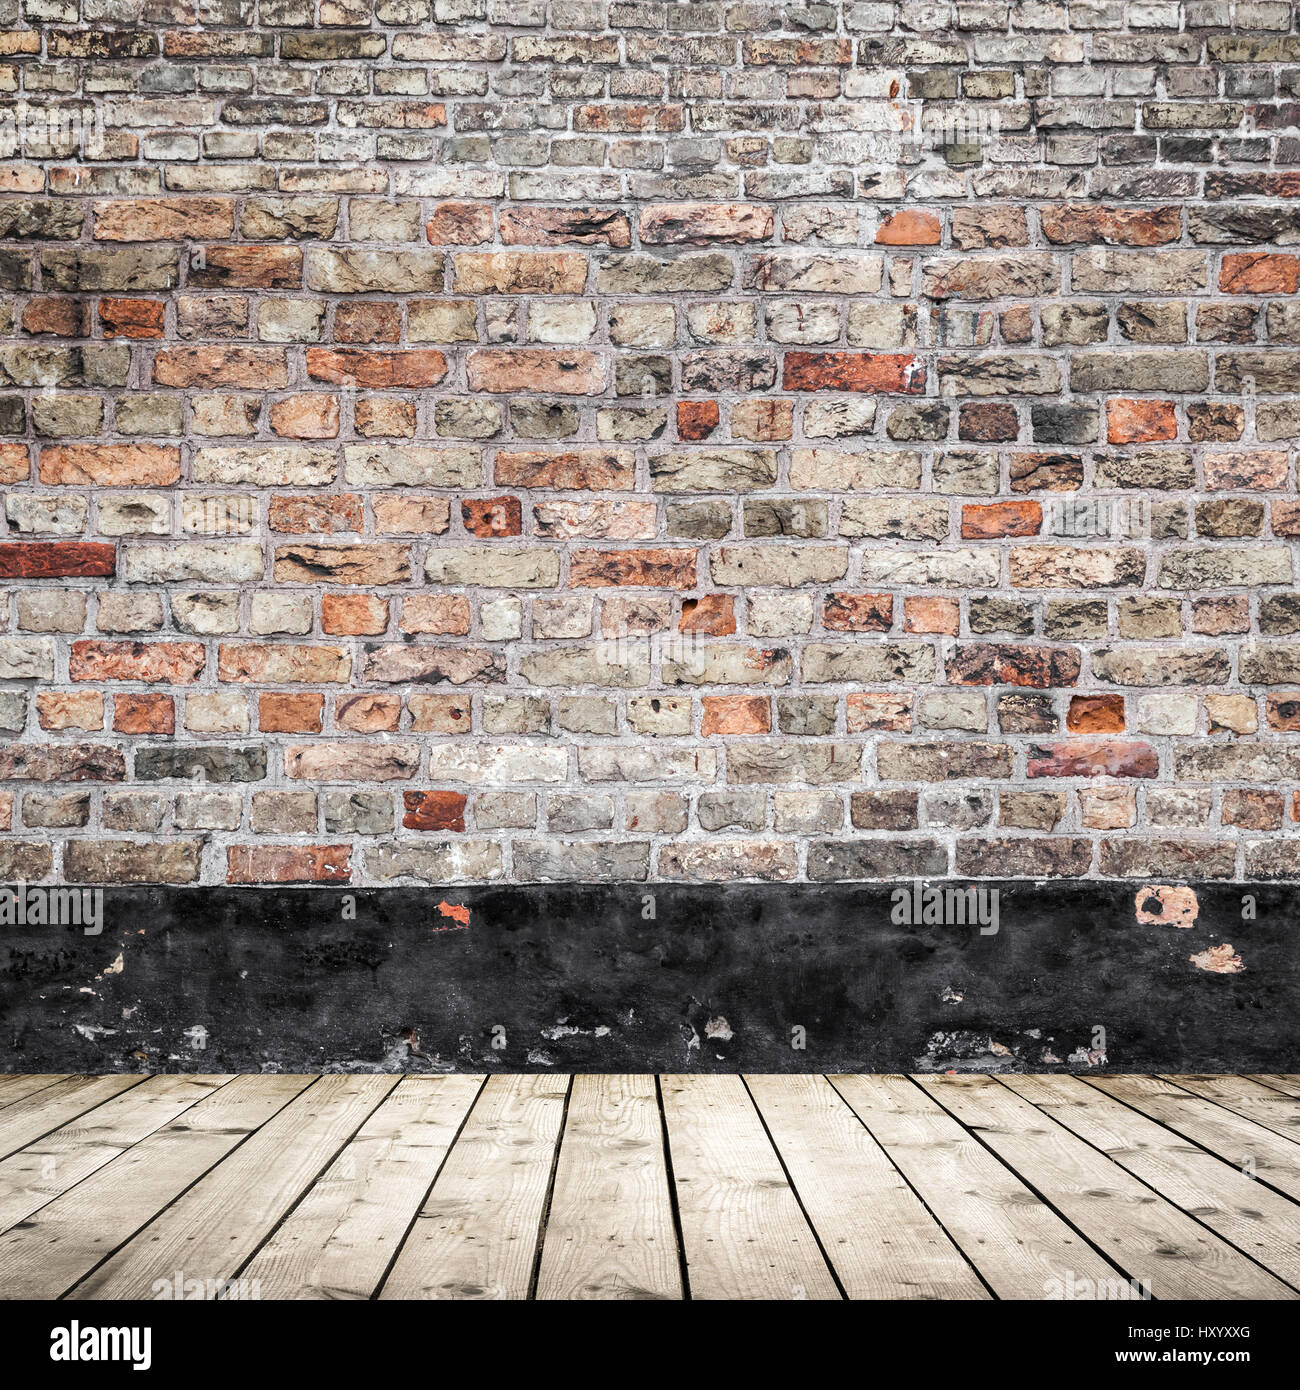 Plain wood table with hipster brick wall background stock photo - Old Red Brick Wall And Wooden Floor Abstract Empty Interior Background Texture Stock Image